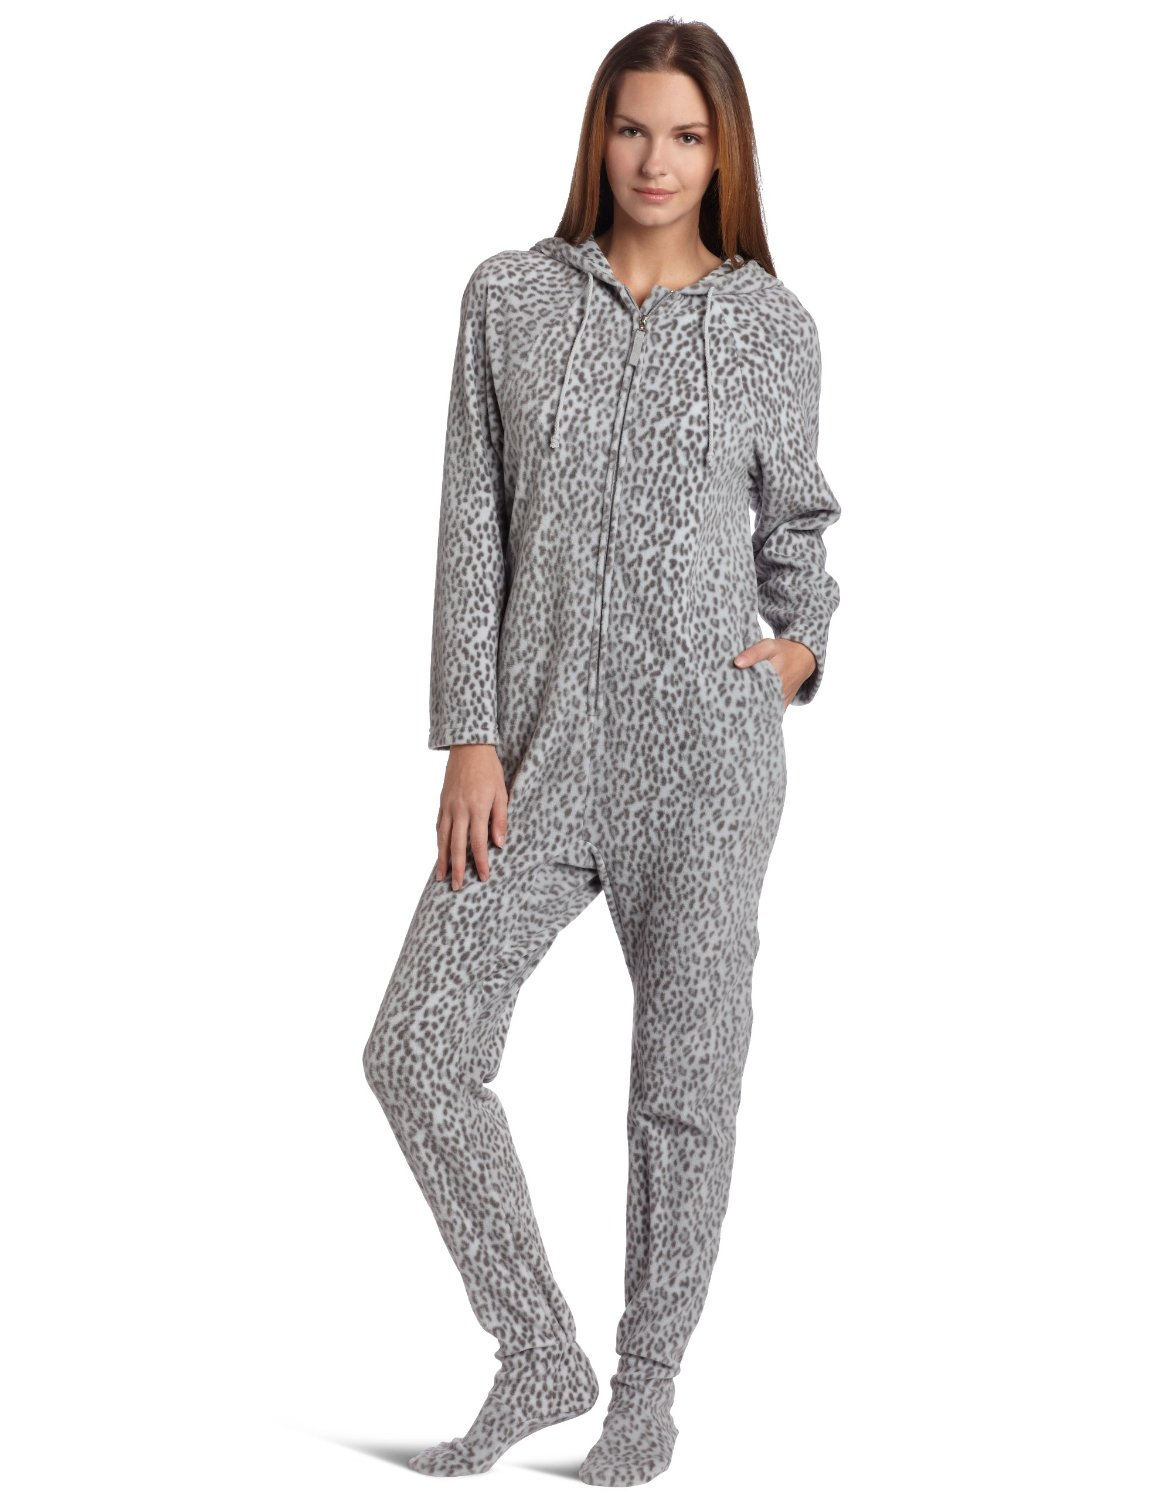 Shop for girl pajamas at bestkapper.tk Explore our selection of girls footed pajamas, pajama sets, girls Christmas pjs & more. Kid Girl Pajamas. items. View All () Items. Page 1 of 5. I love the quality of Carter's pajamas. They don't have tags to cut out which is nice.